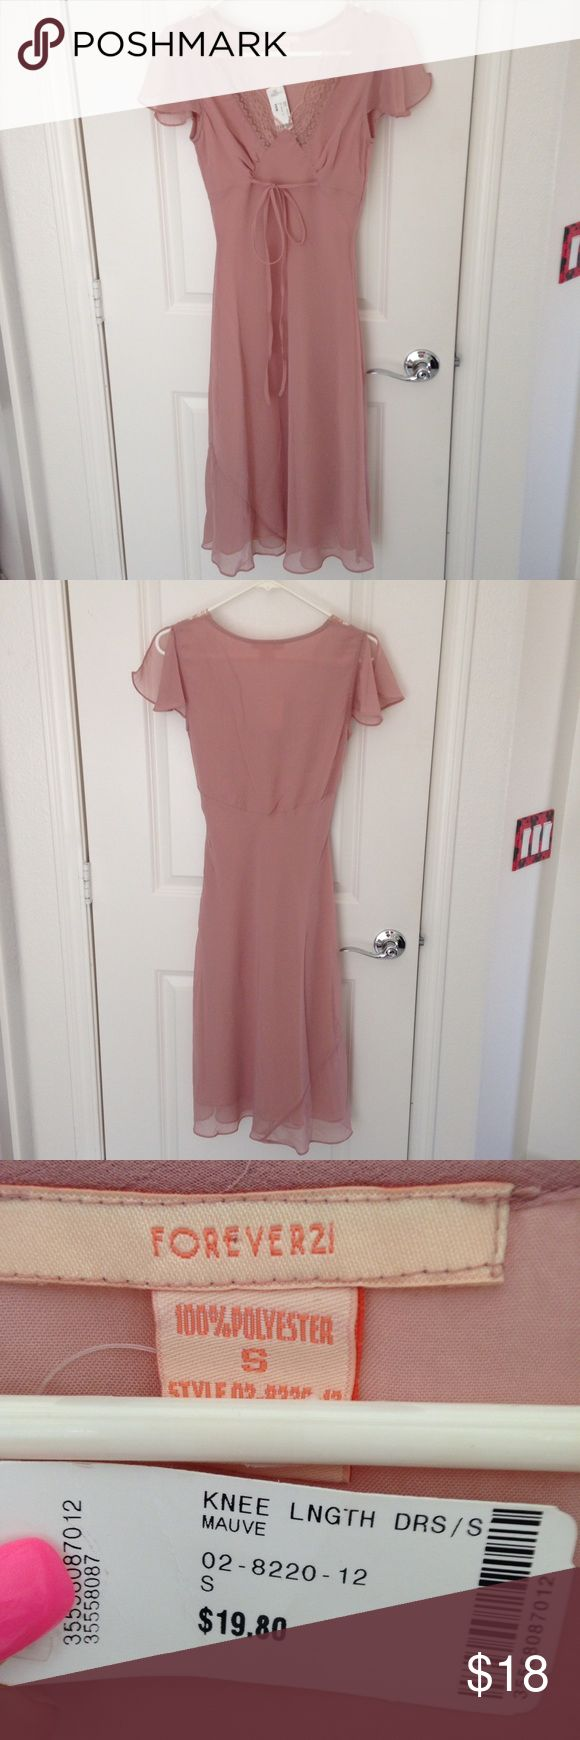 NWT Forever 21 Dusty Rose Dress Size XS NWT Forever 21 Dusty Rose dress. Size extra small. It has flutter sleeves is very lightweight and is absolutely gorgeous. It drops just past the knees. Please ask any questions no trades. Thank you for looking. Forever 21 Dresses Midi